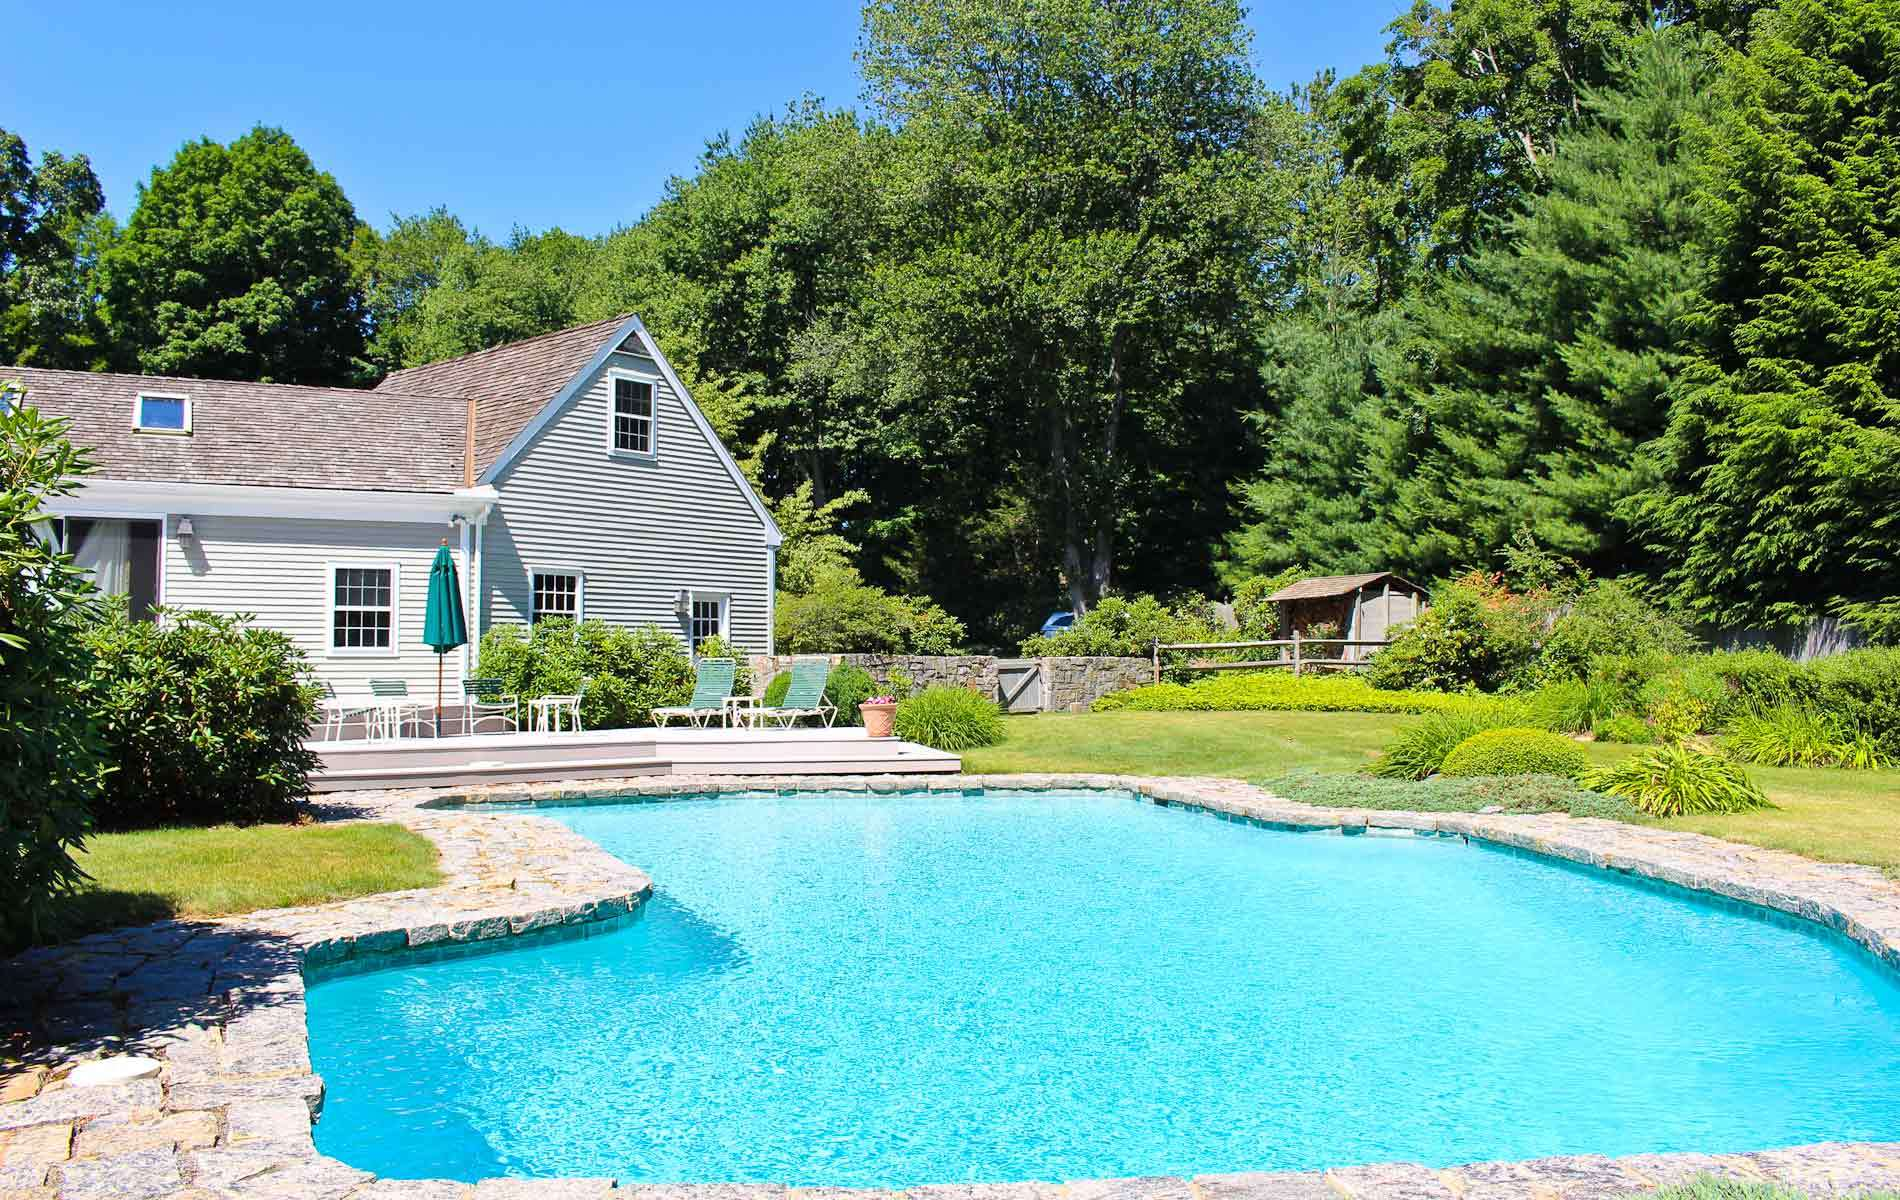 Homes with swimming pool for sale in redding ct find and for Homes for sale in utah with swimming pools